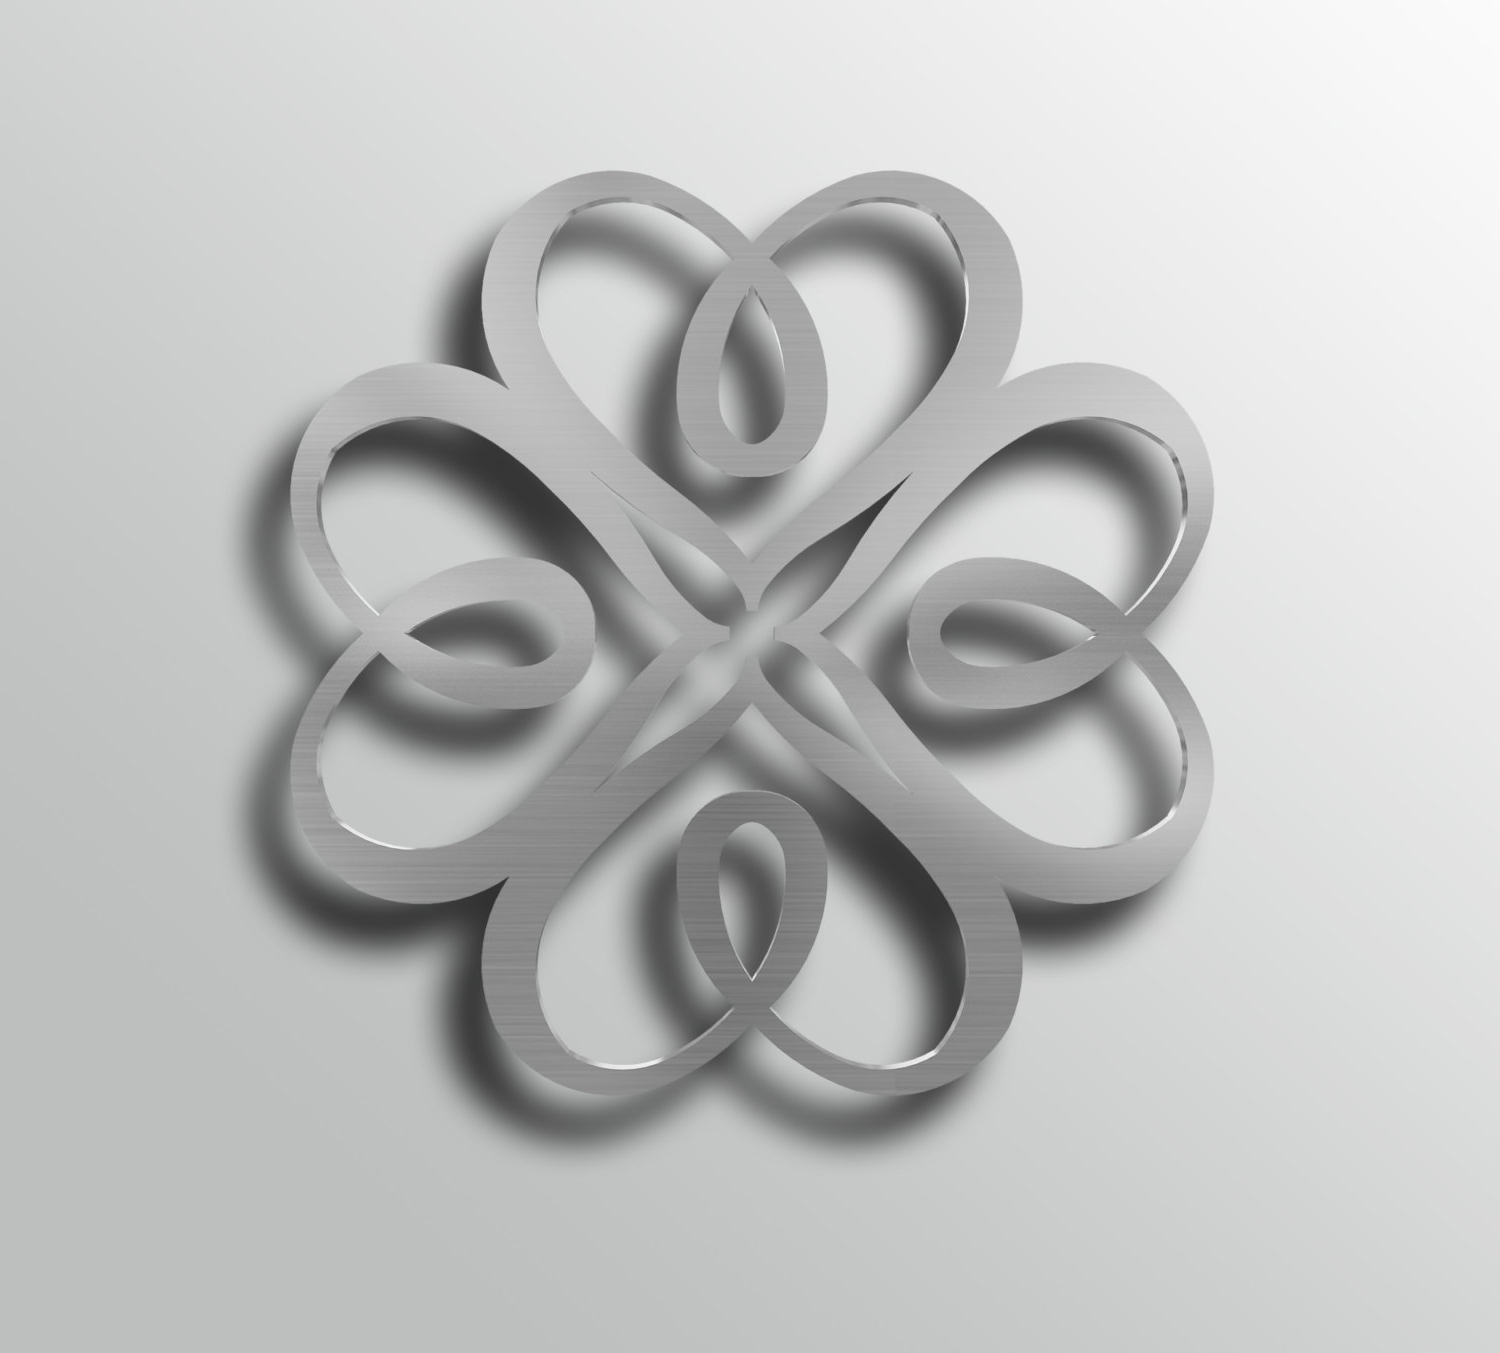 Geometric Heart, Abstract Metal Wall Art Sculpture, Heart Wall Regarding Recent Abstract Heart Wall Art (View 11 of 15)